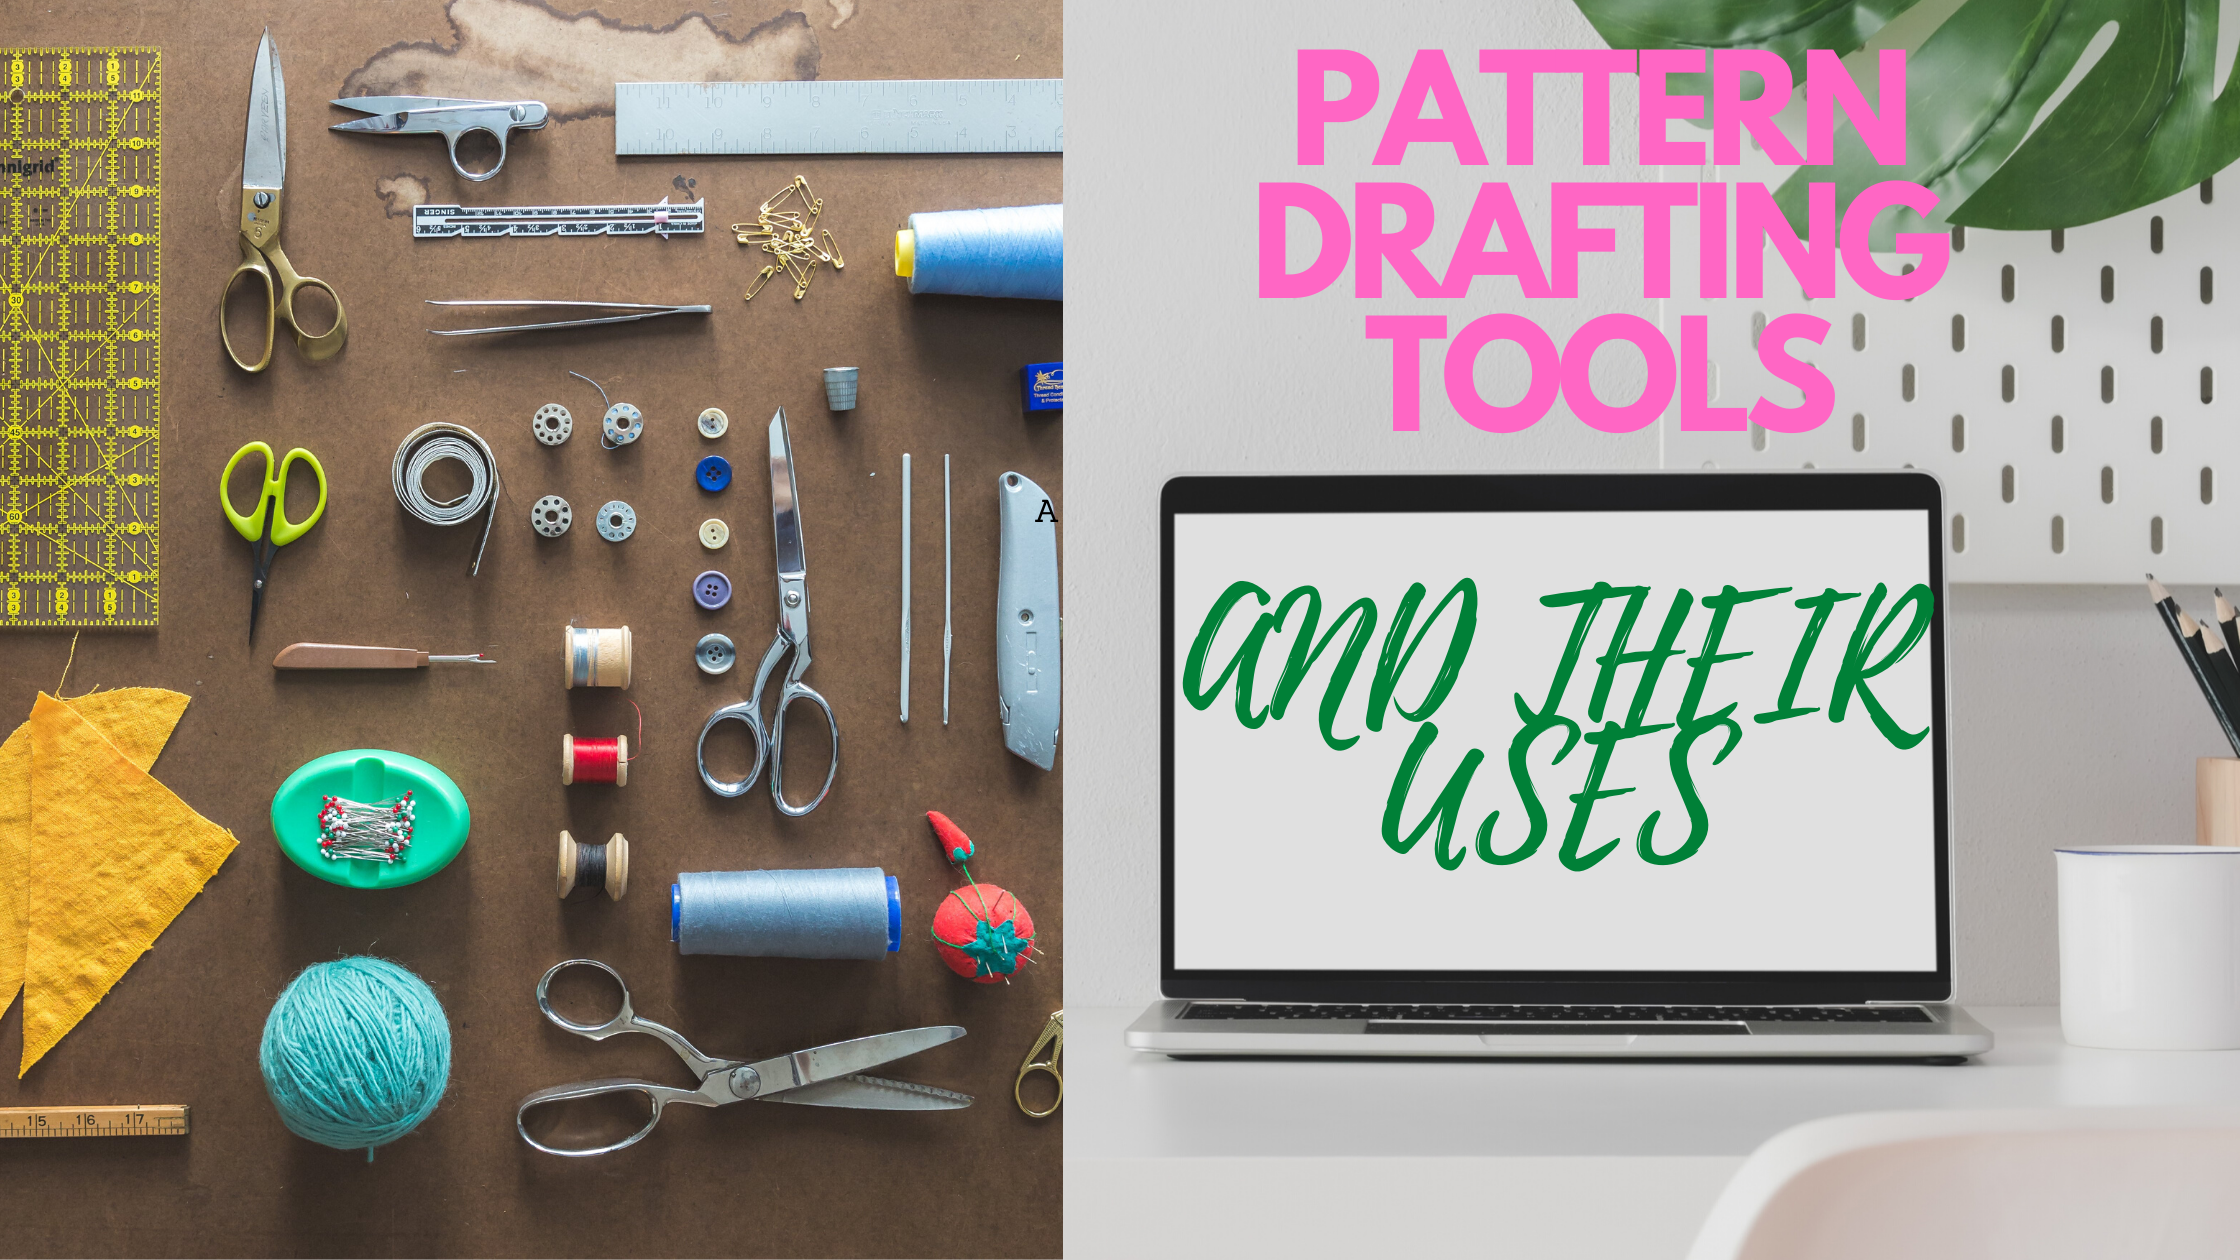 PATTERN DRAFTING.PATTERN DRAFTING TOOLS AND THEIR FUNCTIONS